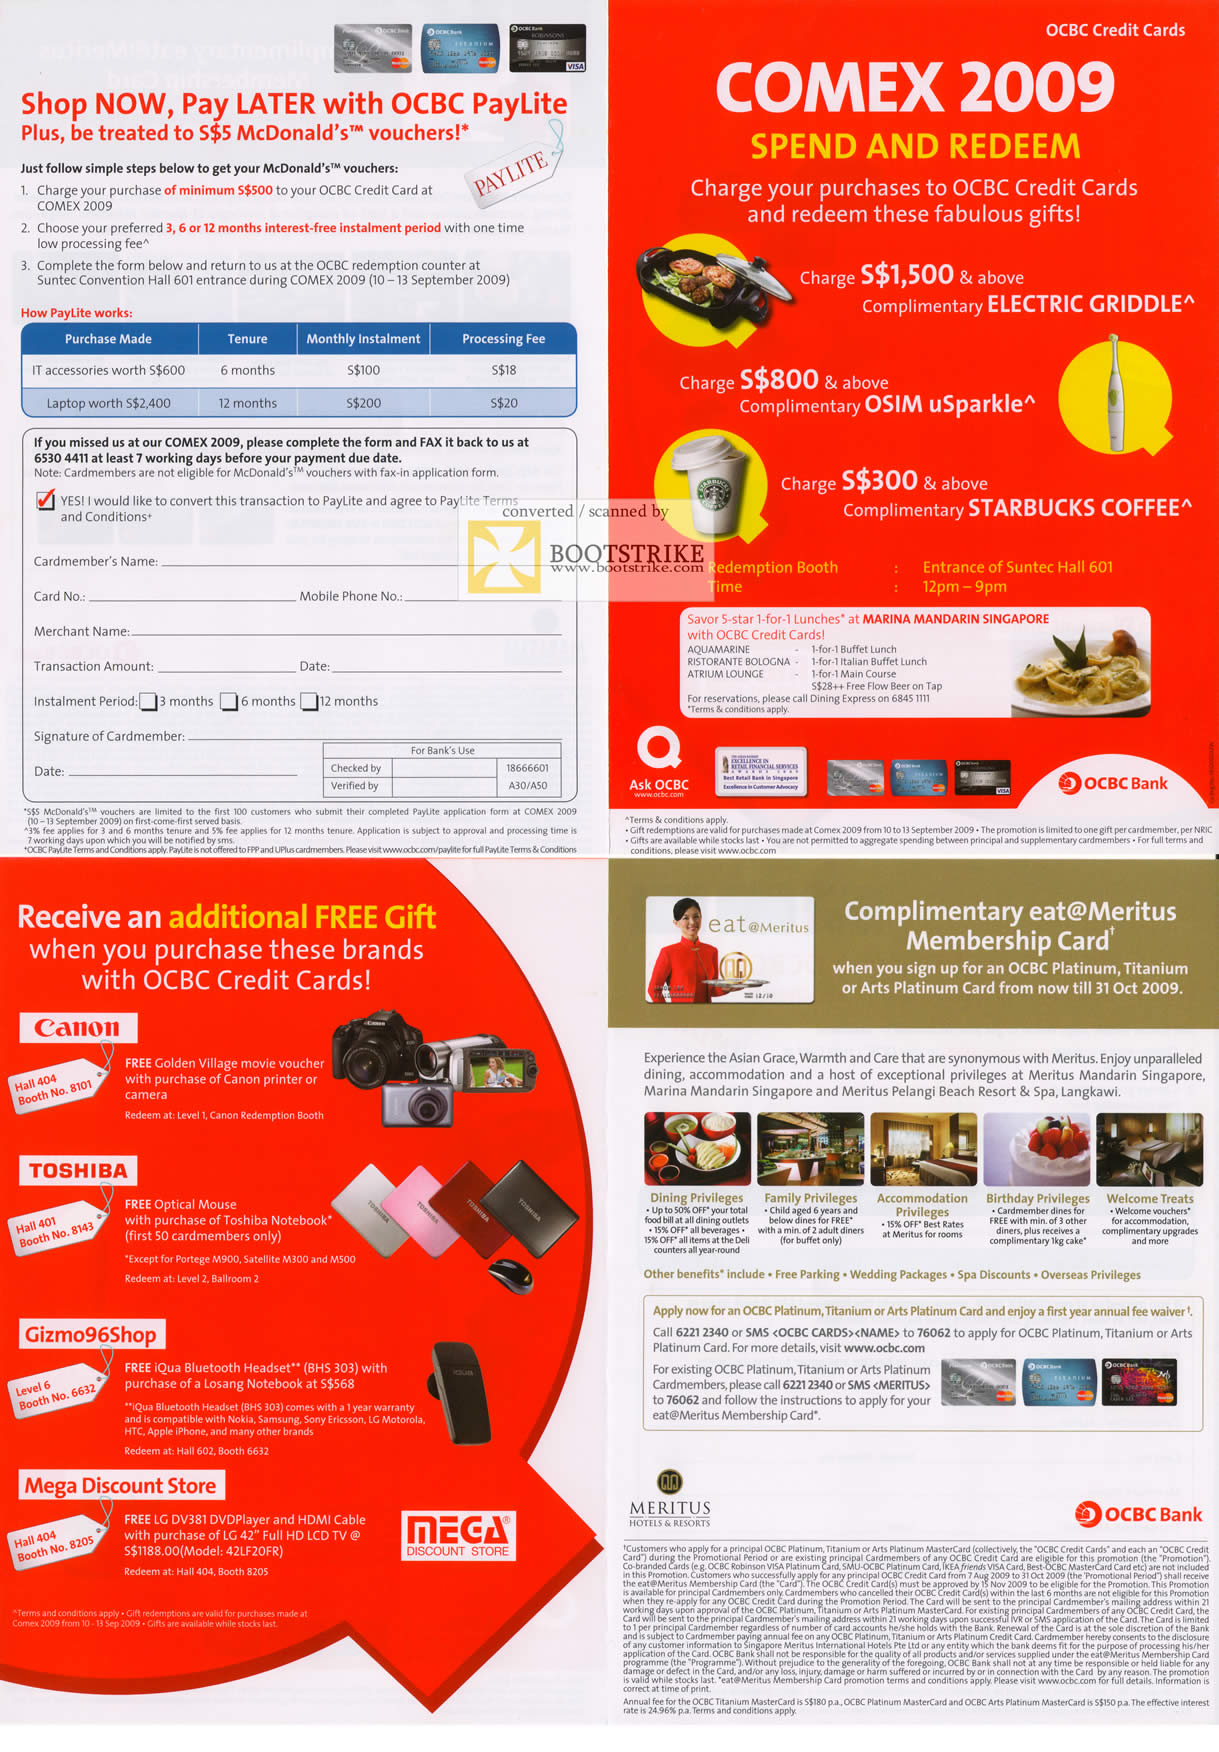 Comex 2009 price list image brochure of OCBC Credit Card Redemption Promotions